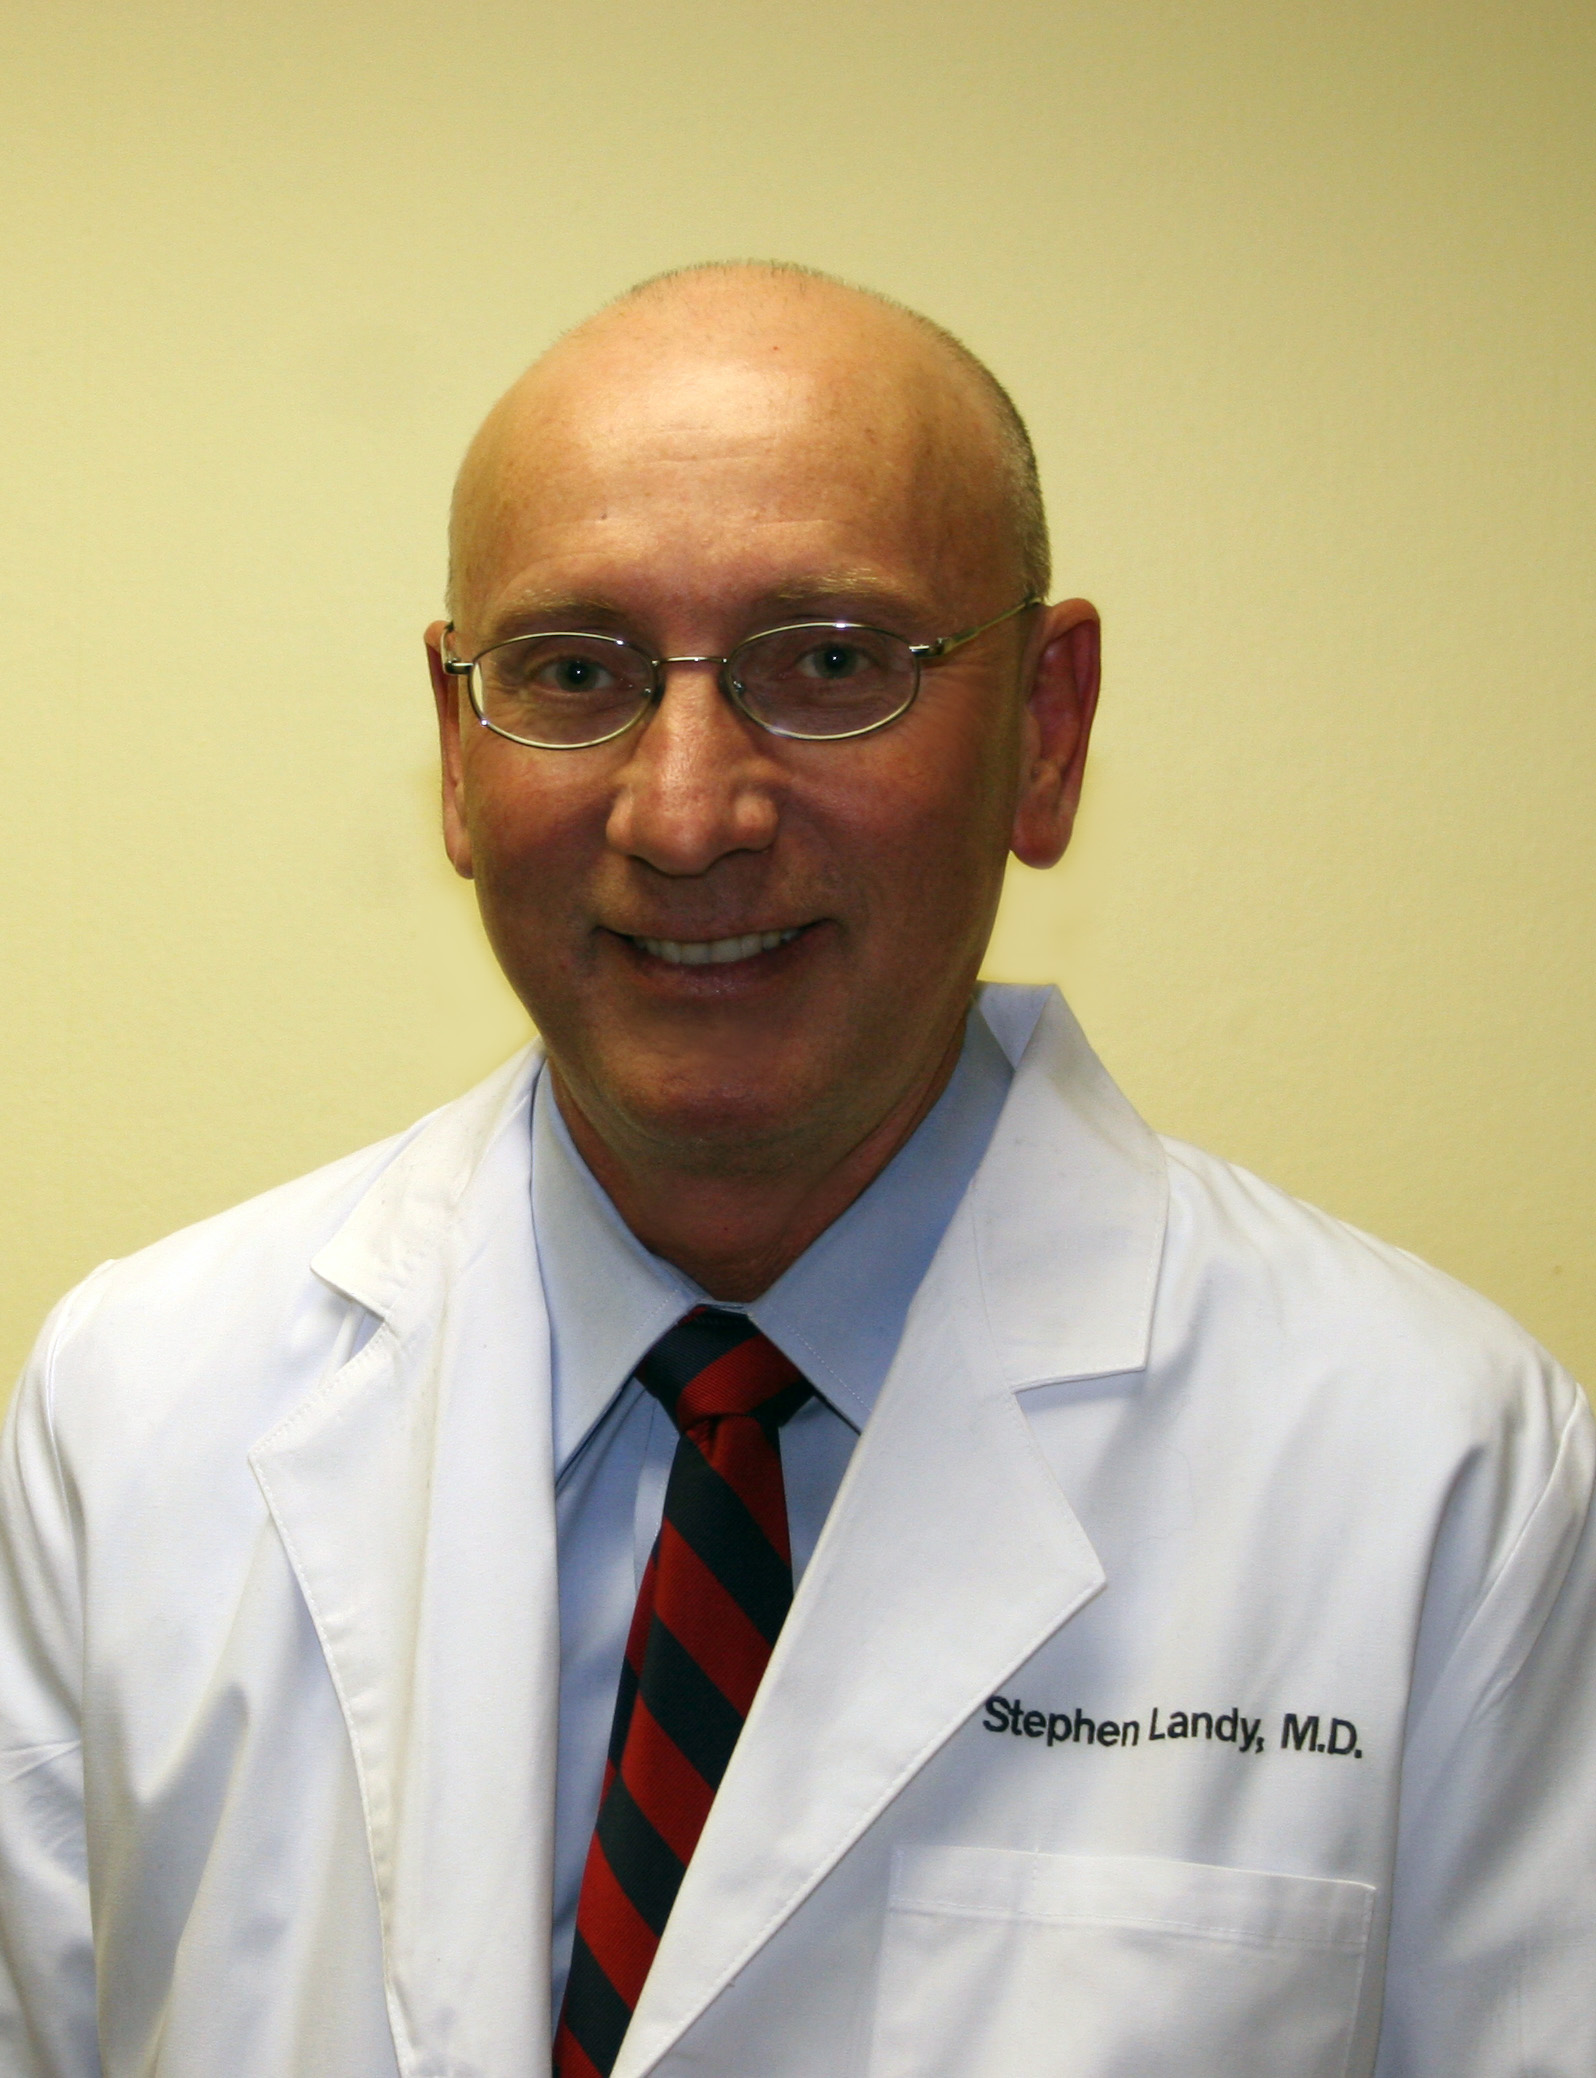 Dr. Stephen Landy, MD